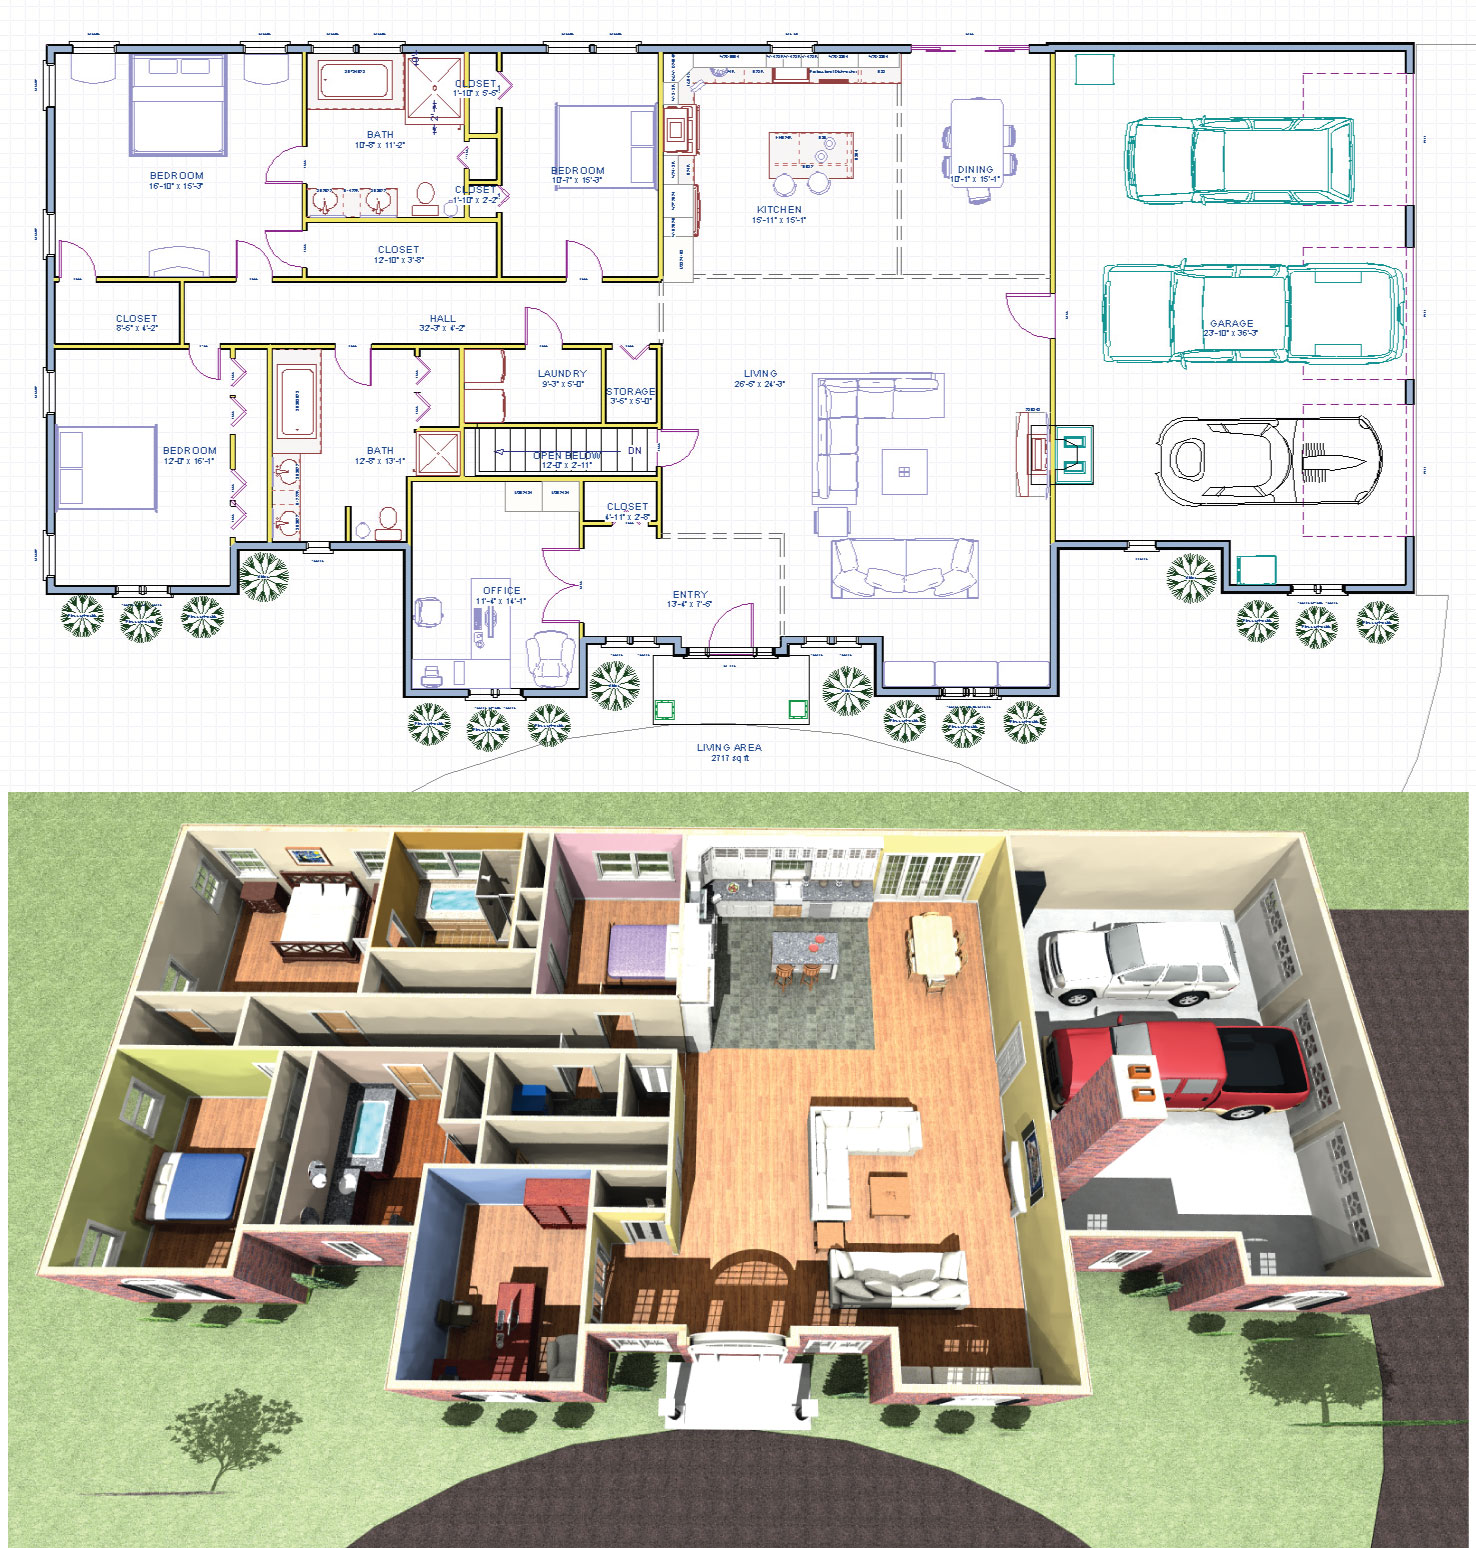 Home Designs October 2012: House Plans For Future Additions